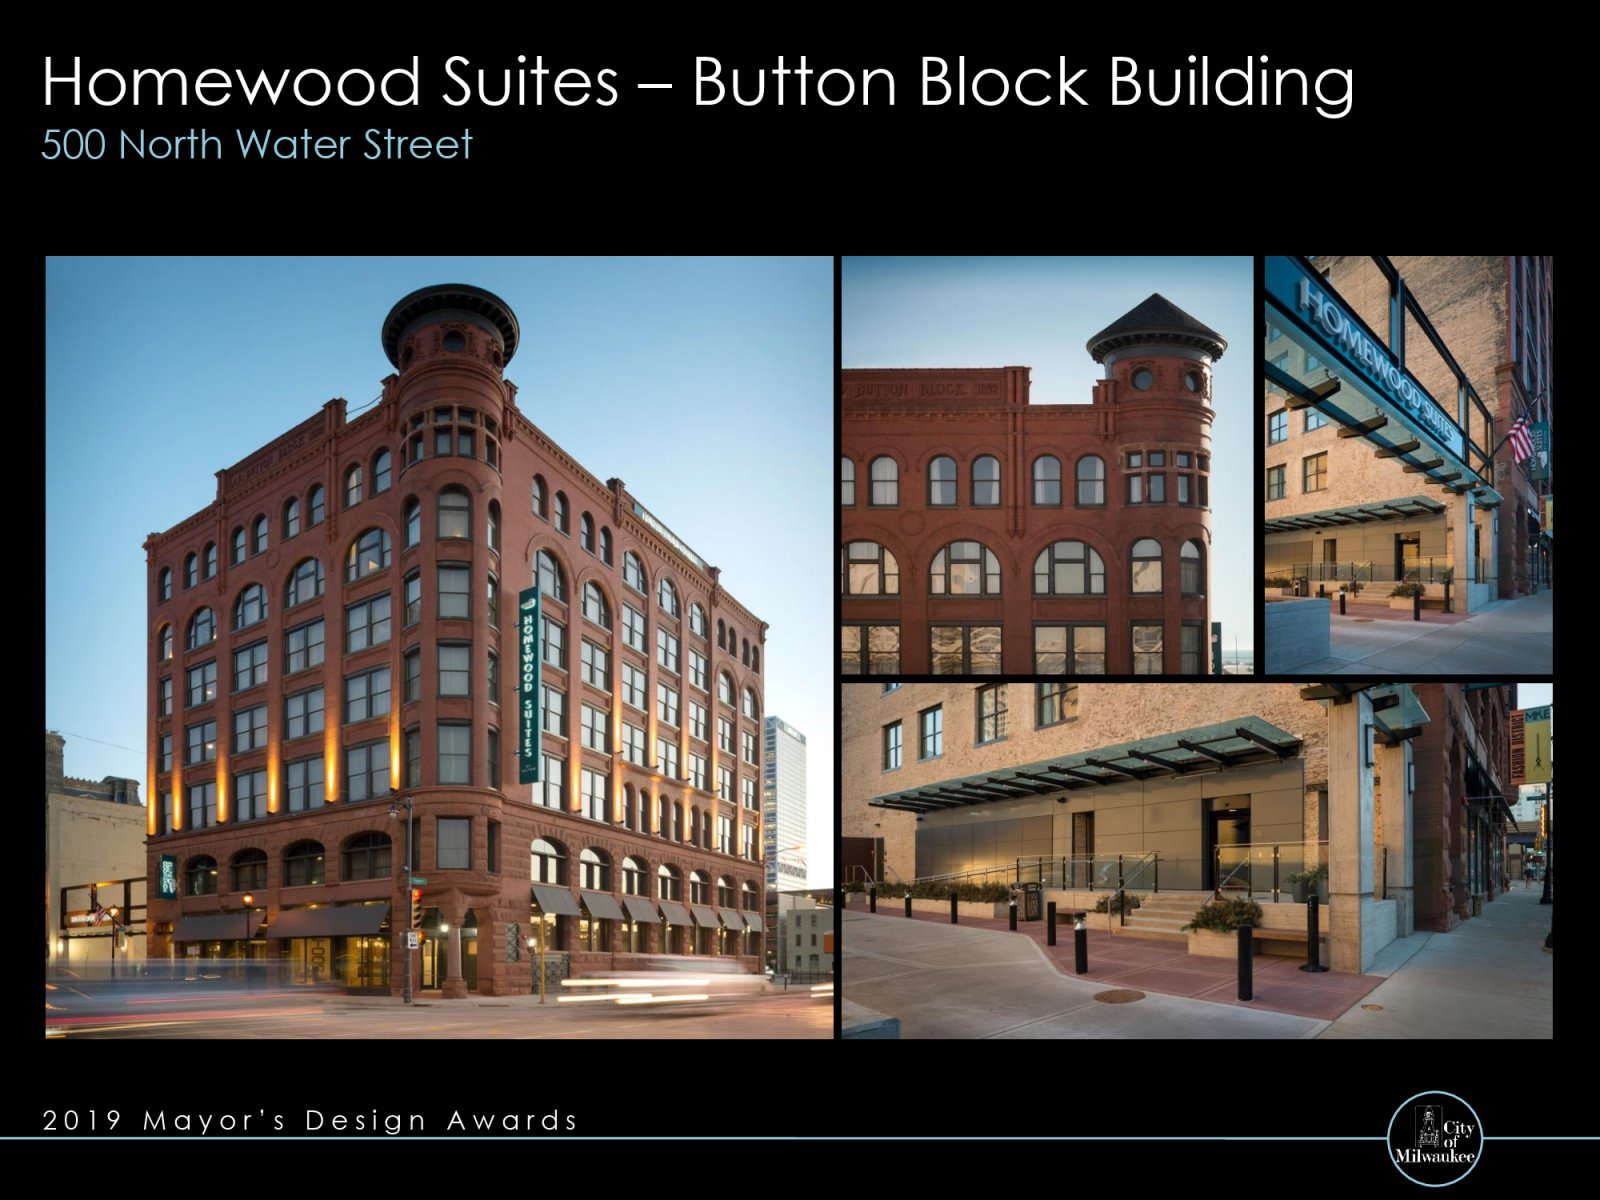 Homewood Suites - Button Block Building